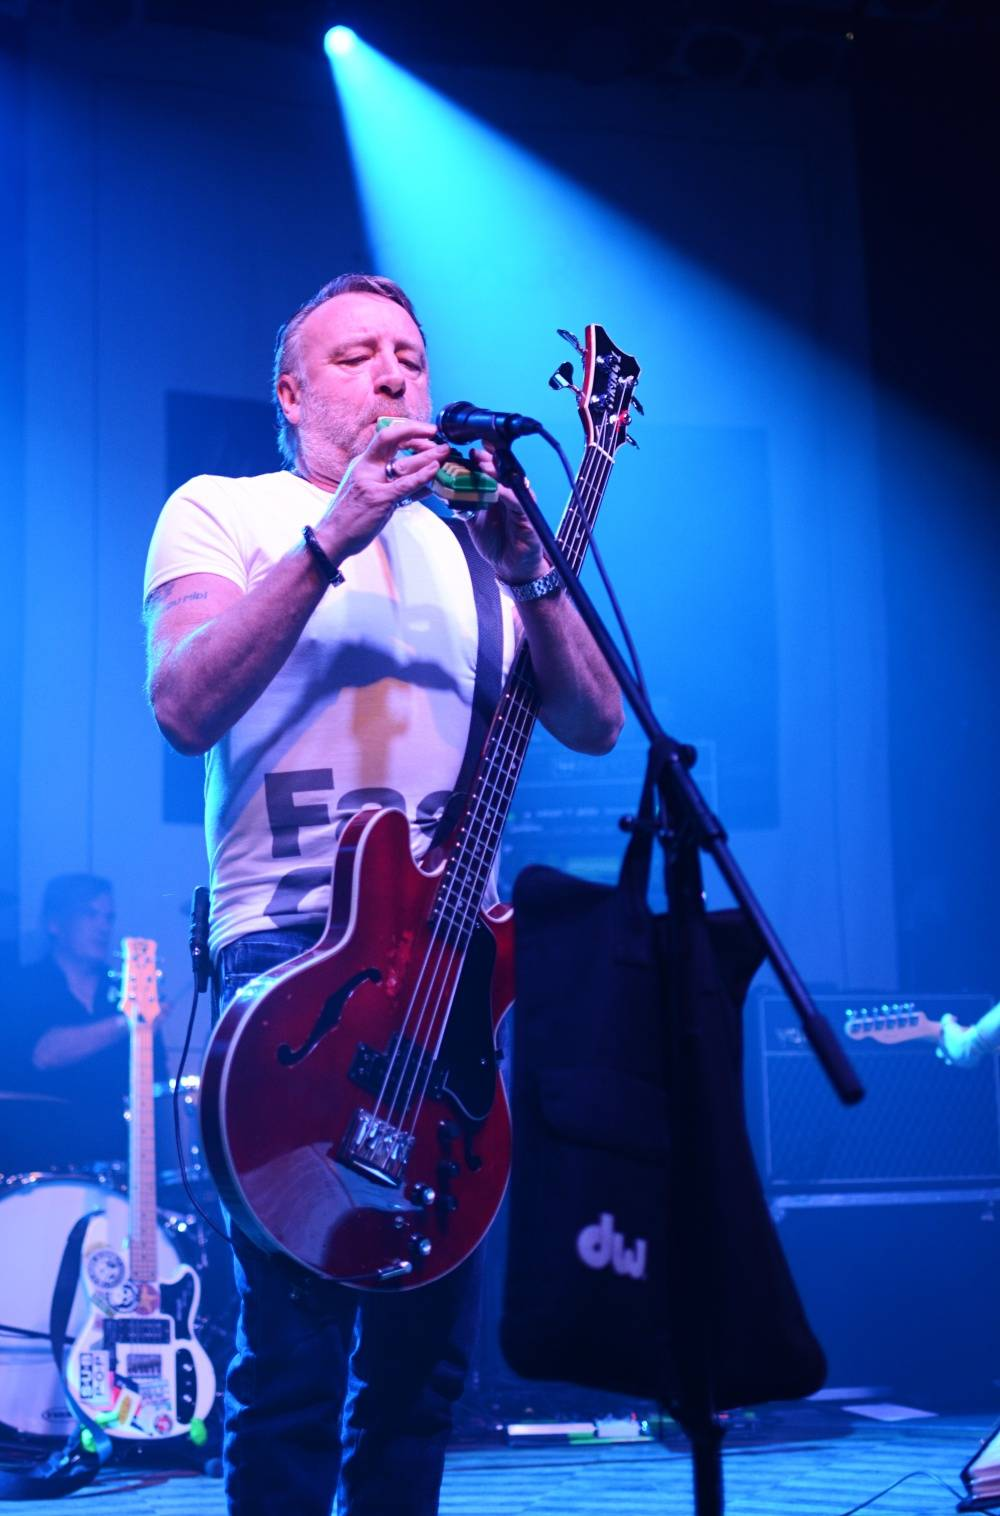 LIVE: Peter Hook & The Light cestovali časem a křísili Iana Curtise